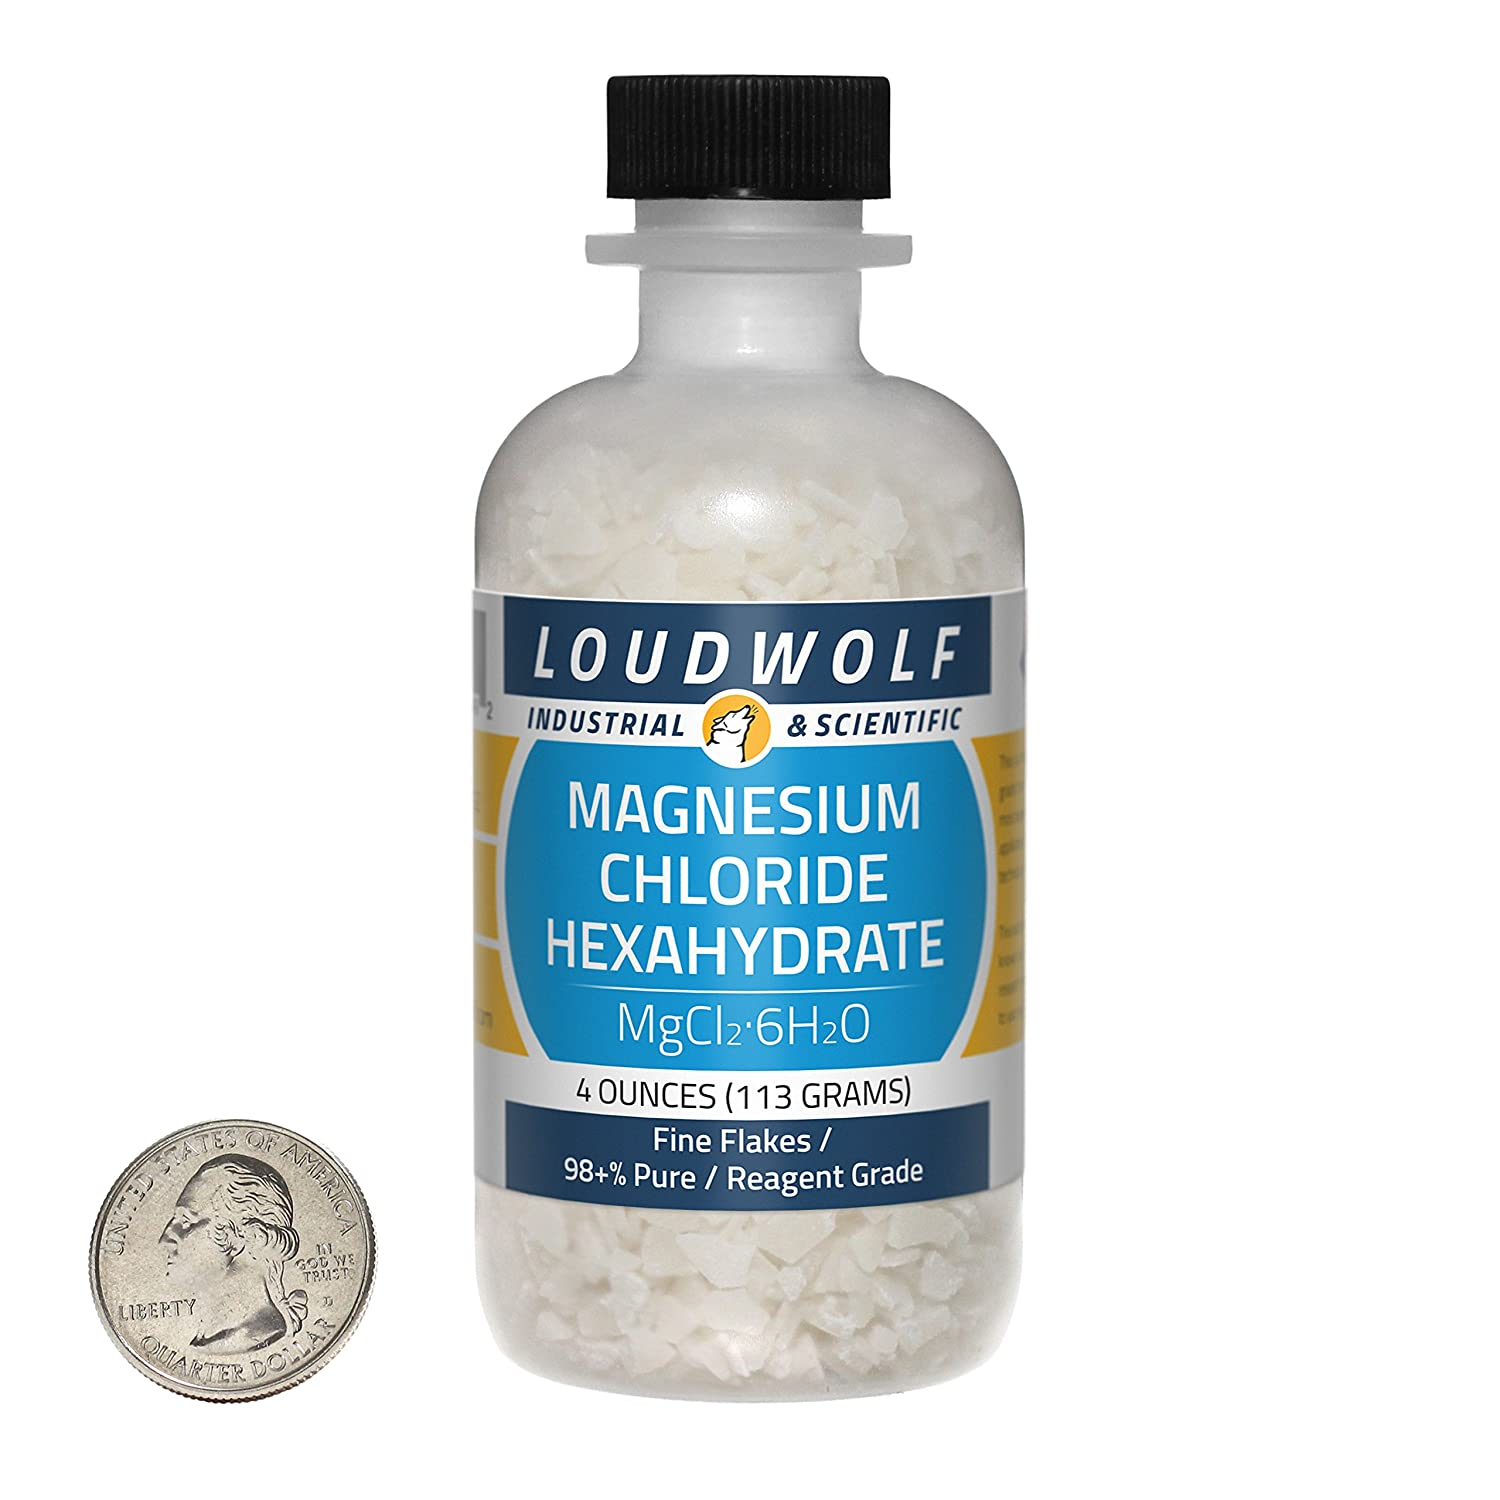 Amazon.com: Magnesium Chloride Hexahydrate / Fine Flakes / 4 Ounces / 98+% Pure / SHIPS FAST FROM USA by Loudwolf: Health & Personal Care